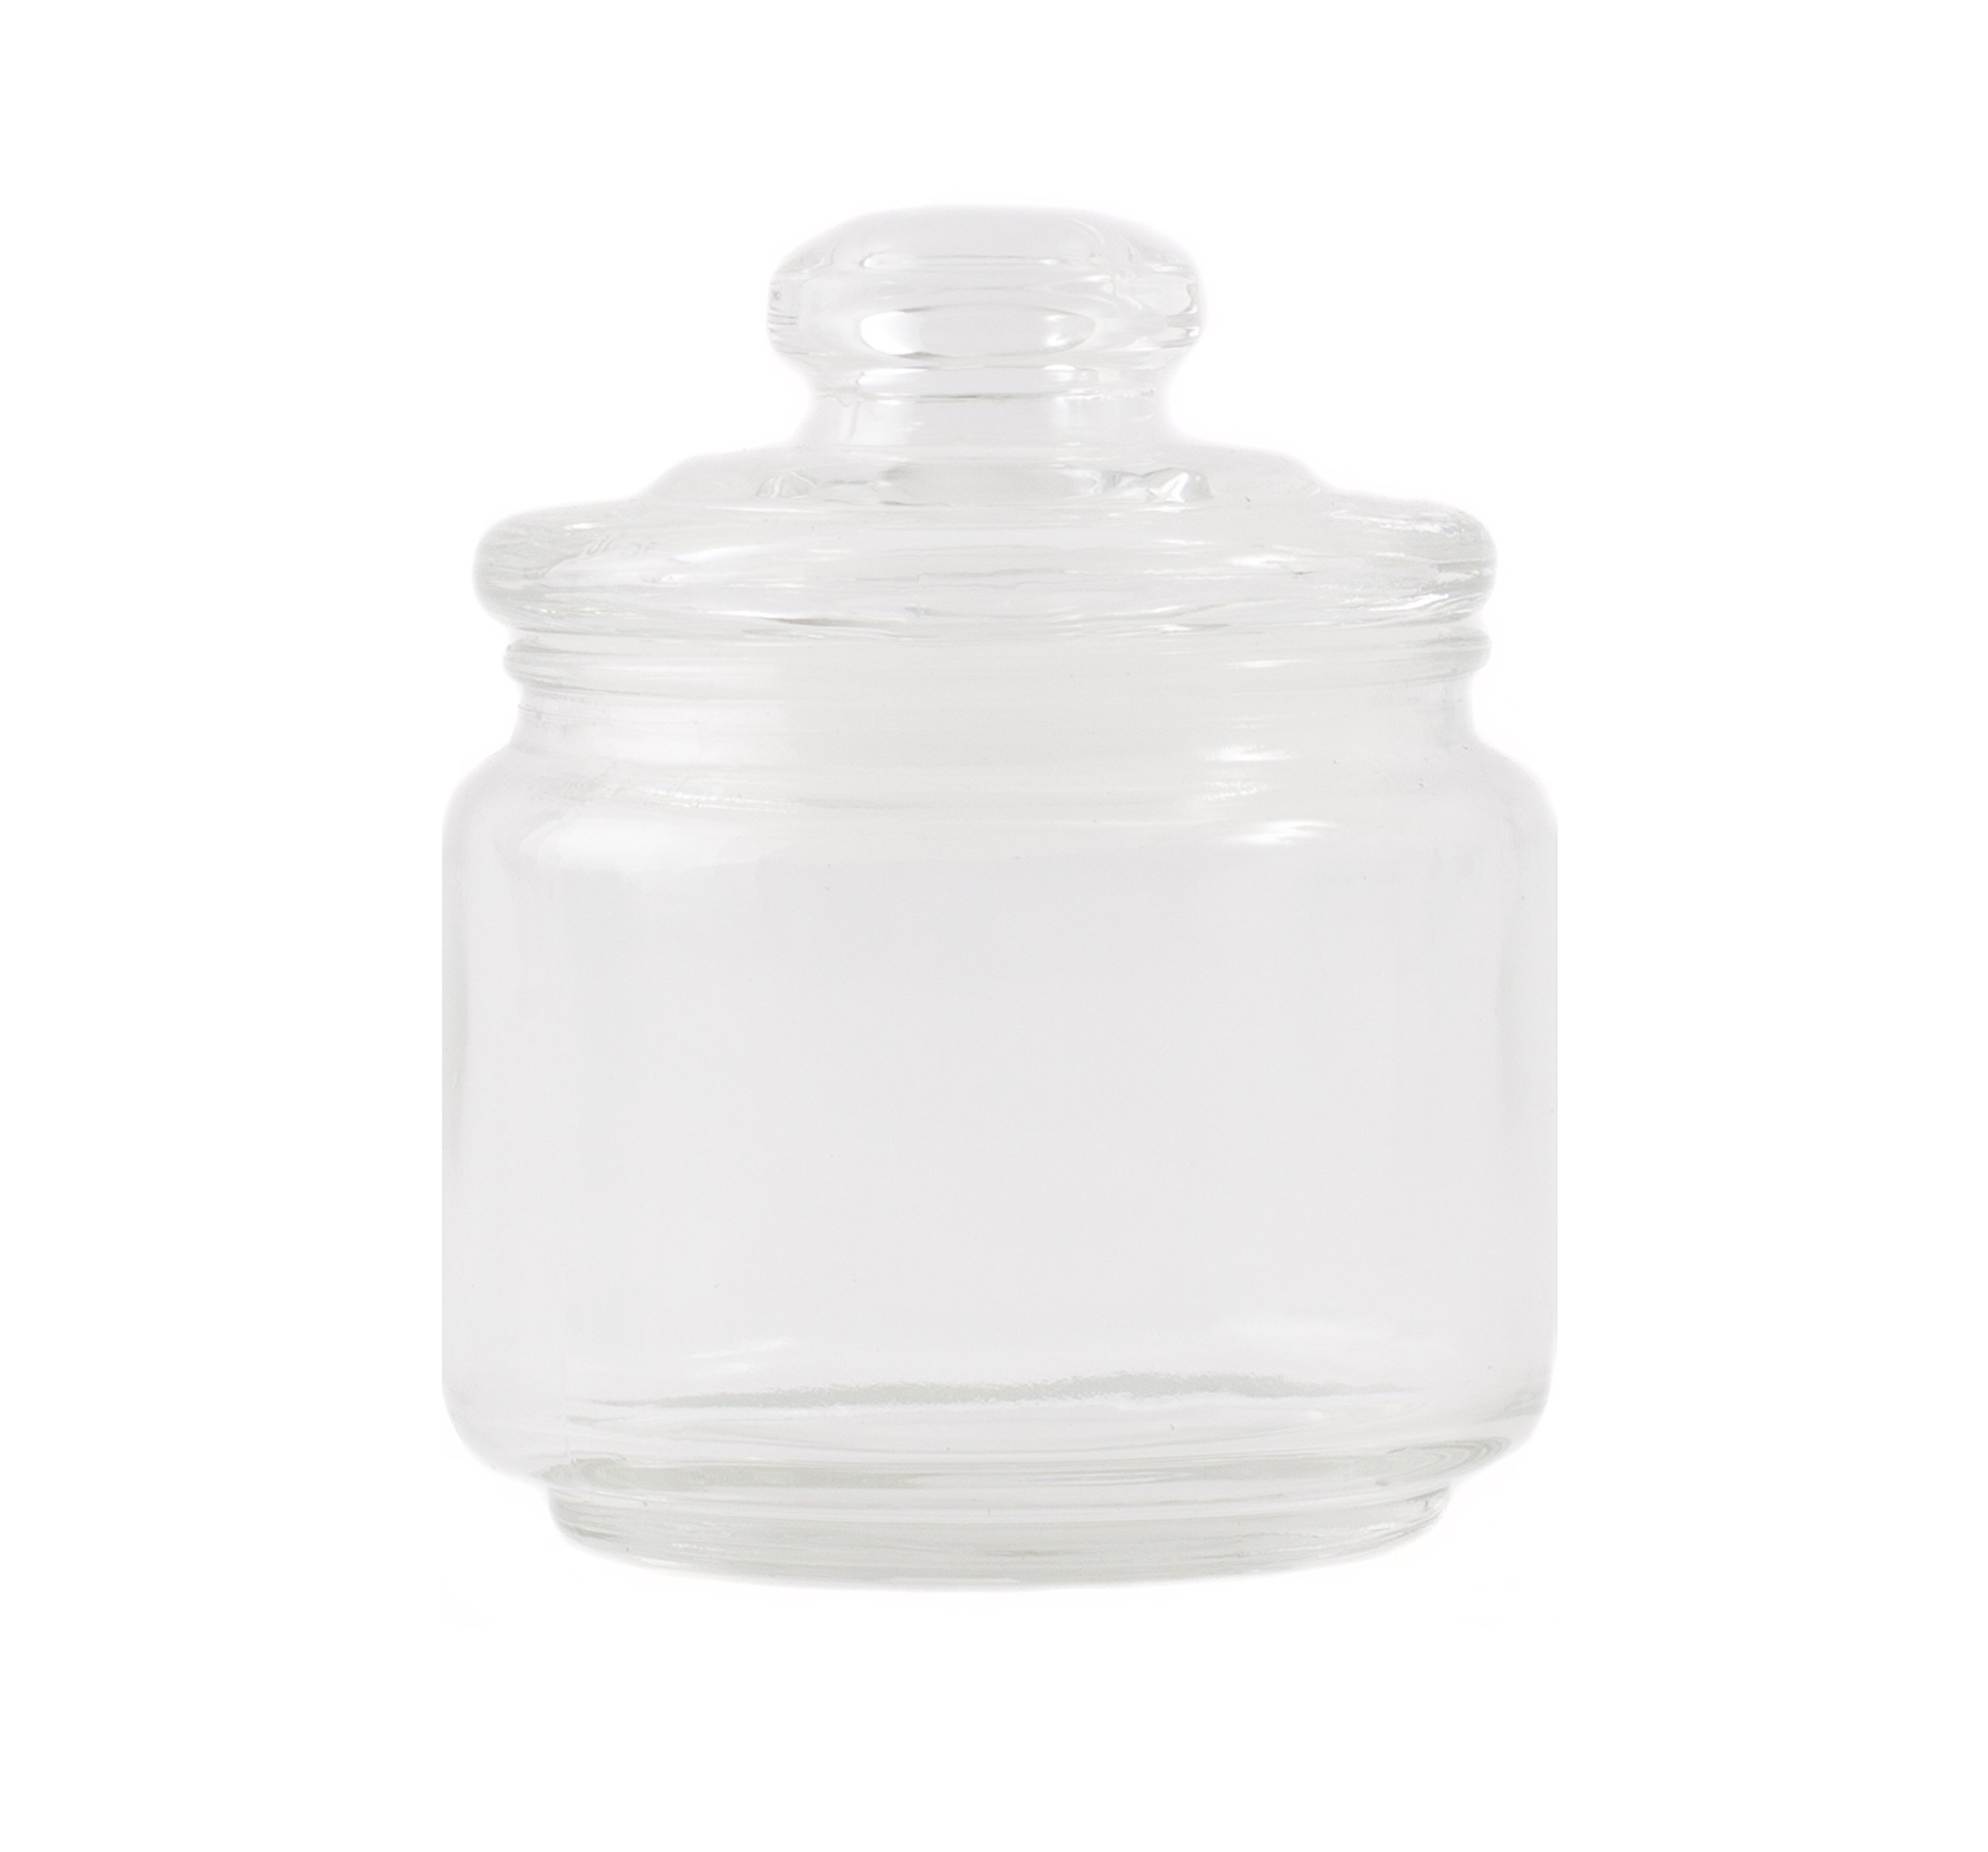 300ml Glass Candle Jar with Lid x 48